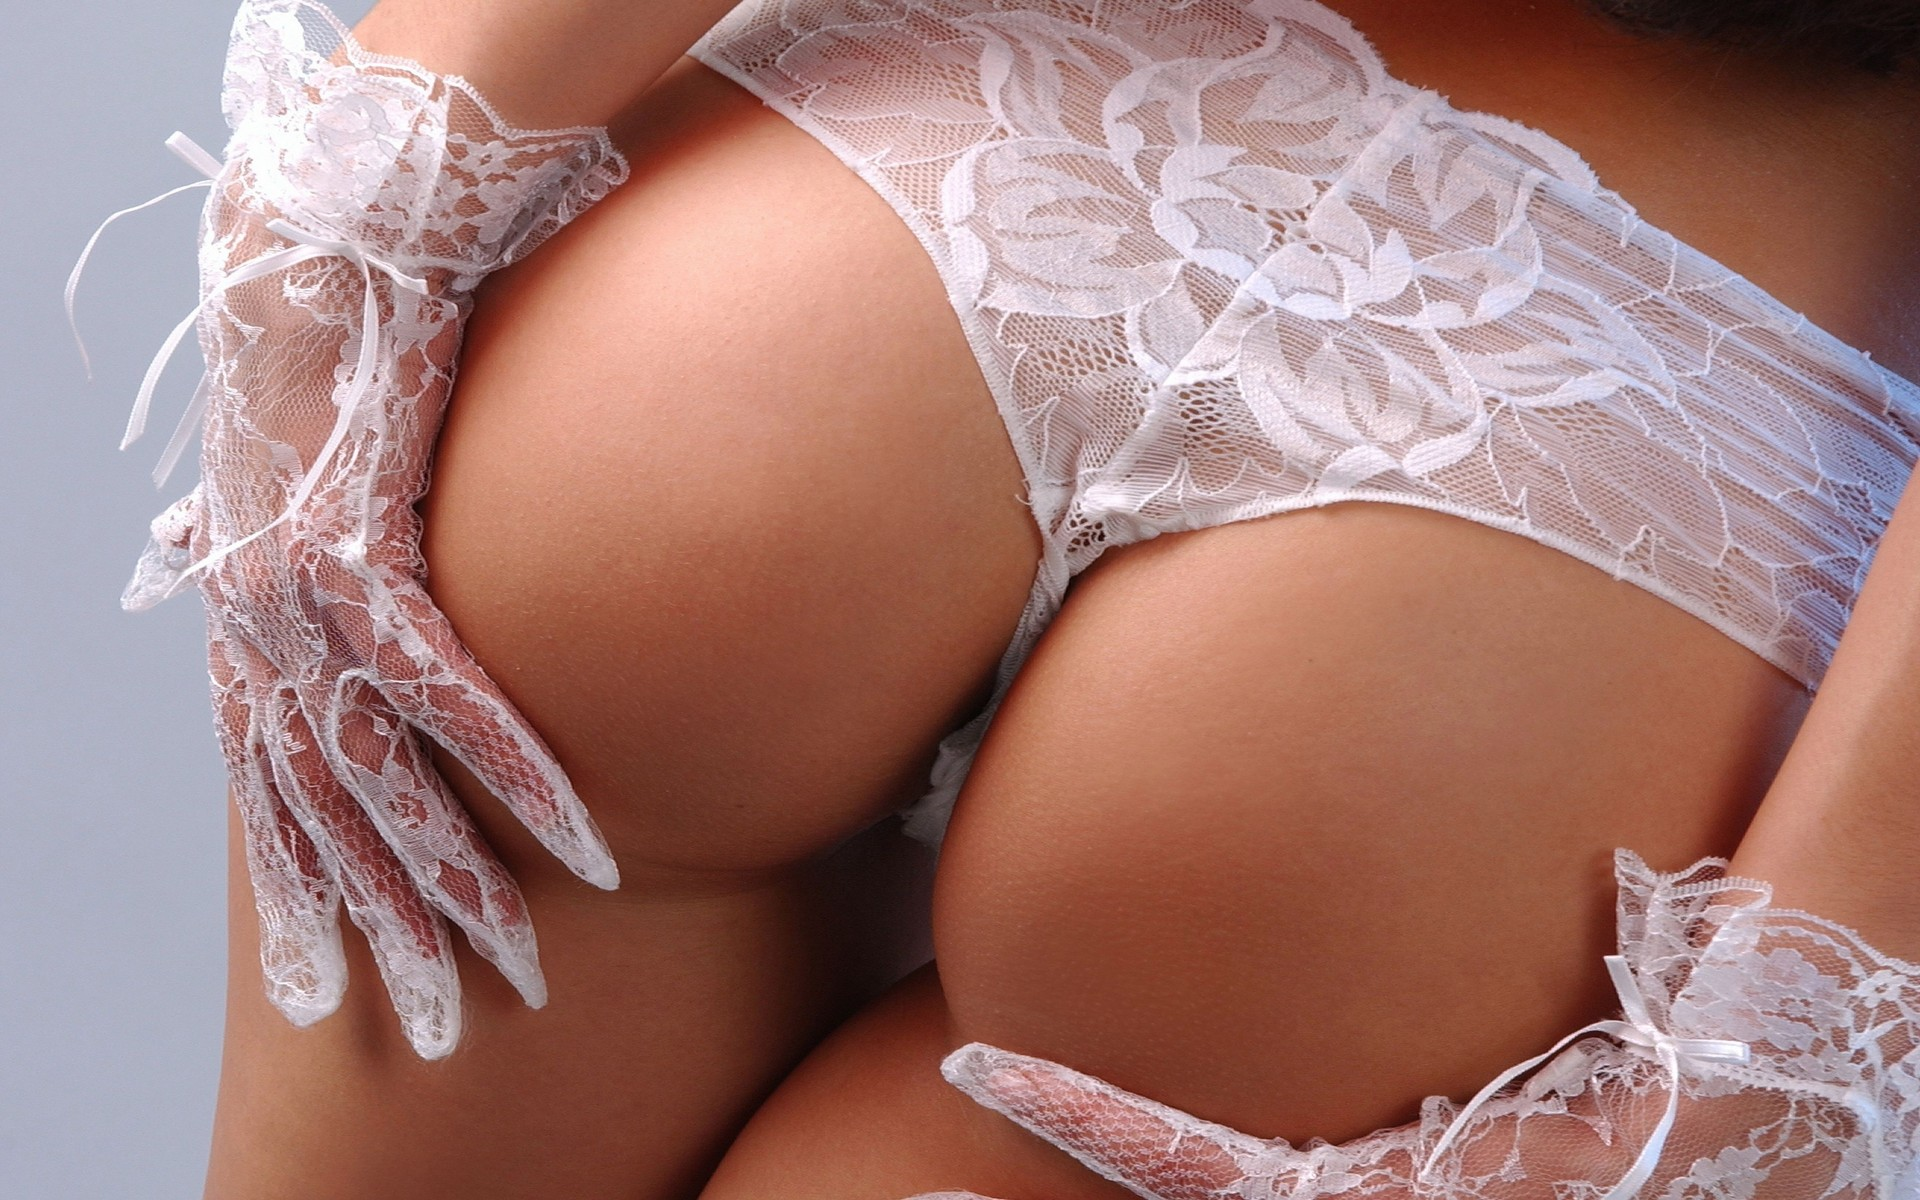 Download High quality ass, panties Lingerie Girls wallpaper / 1920x1200